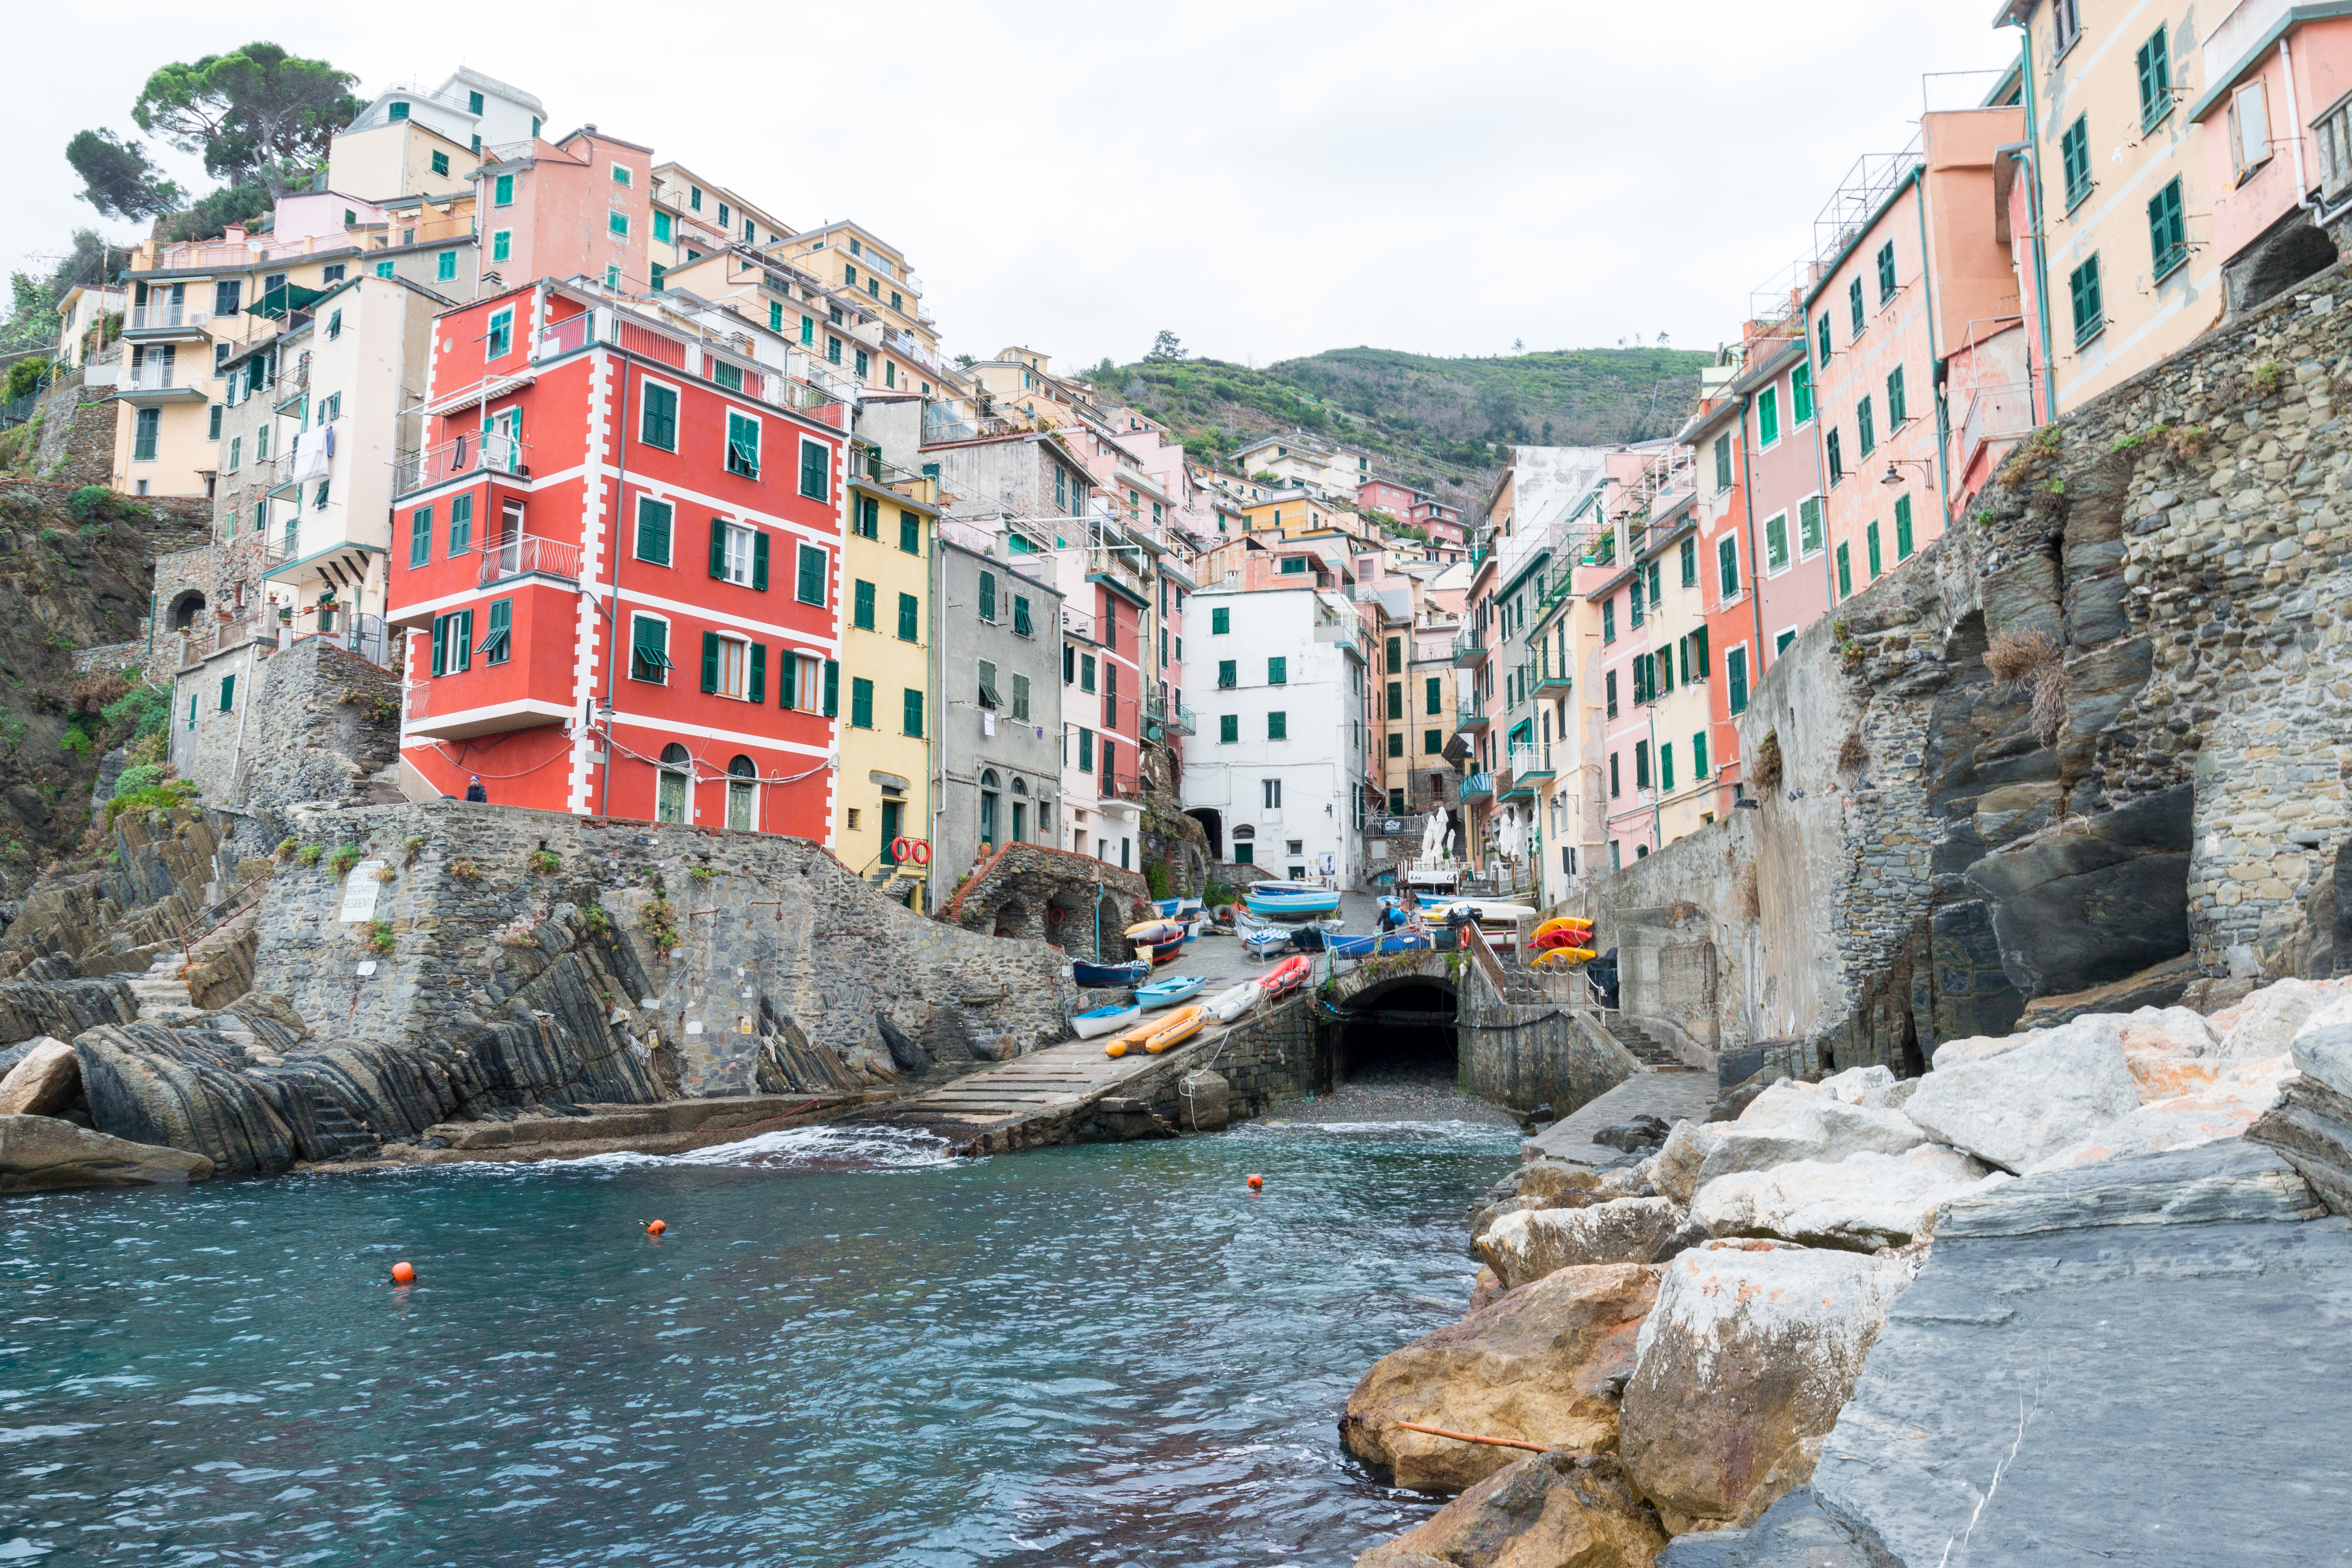 The Heart Of Cinque Terre visiting the cinque terre in the winter - breathe with us